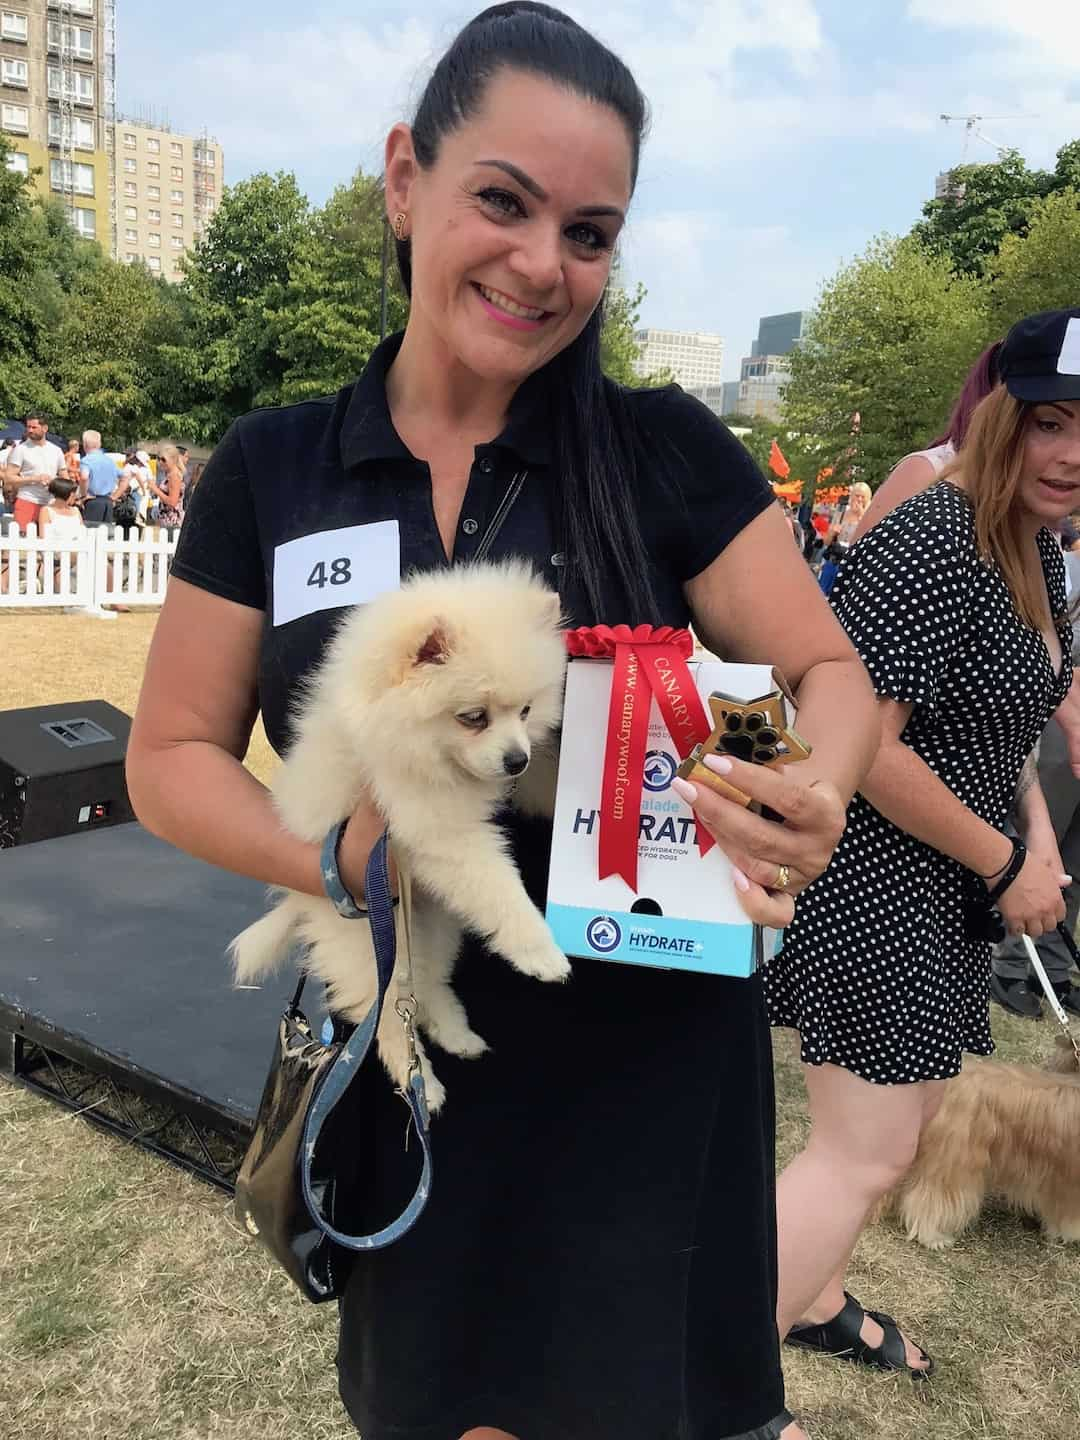 All Things Dog At The Canary Woof Dog Show 2018 - Prince wins Oralade Hydrate+